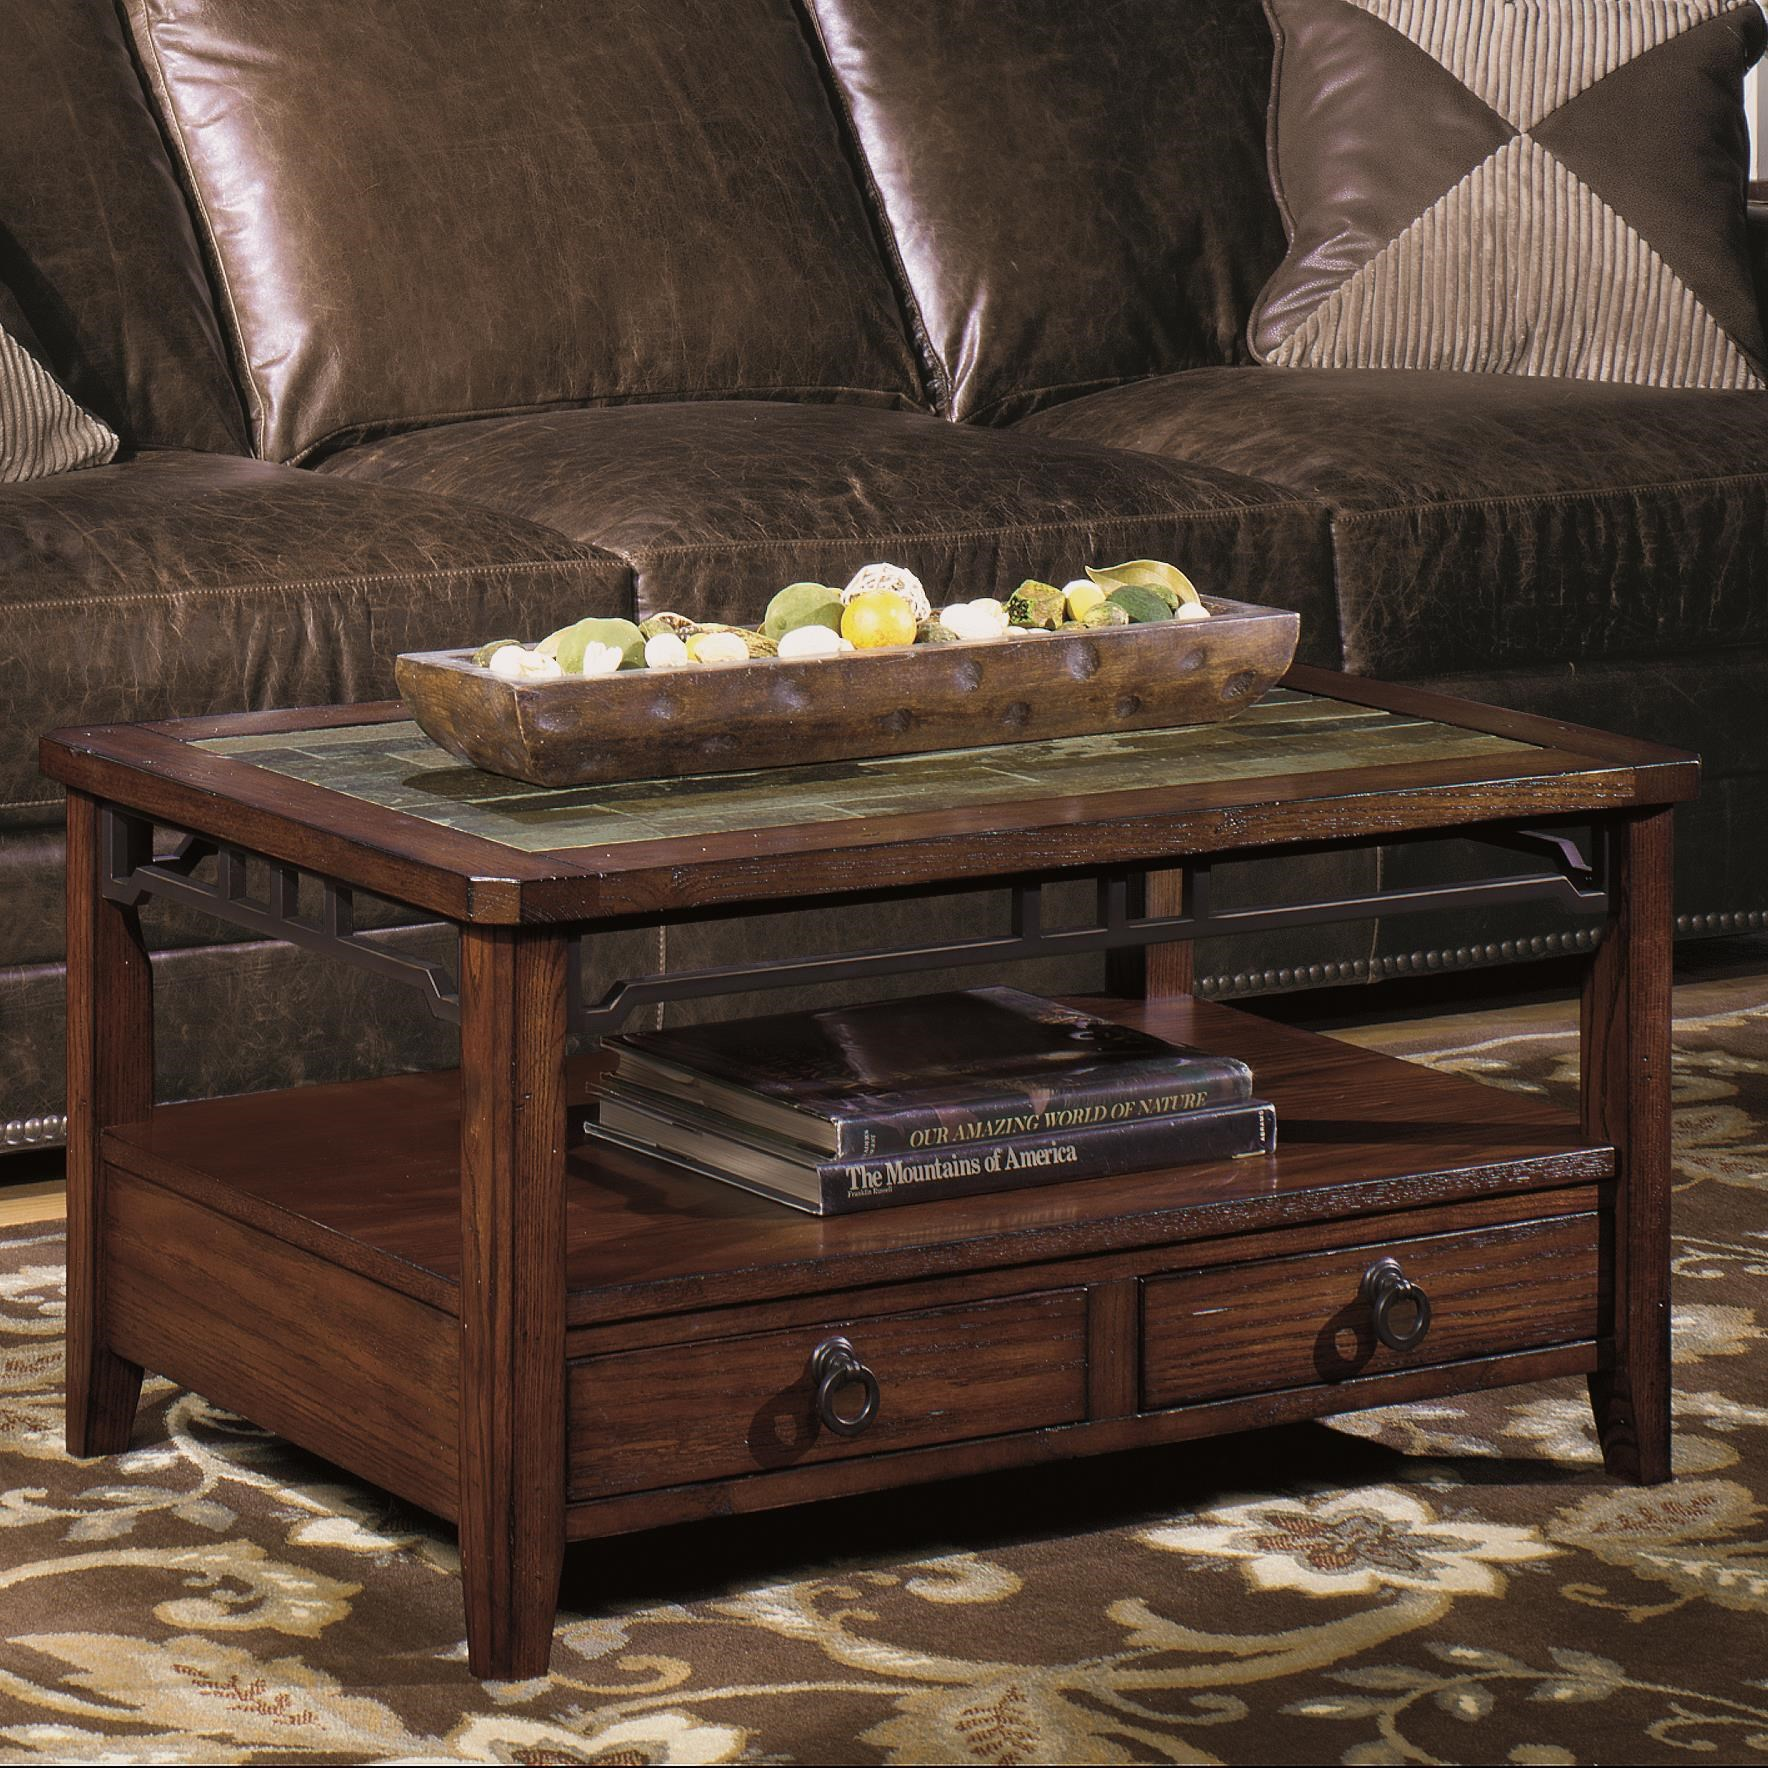 Beautiful Null Furniture 5013 Rectangular Cocktail Table With Inset Stone Top